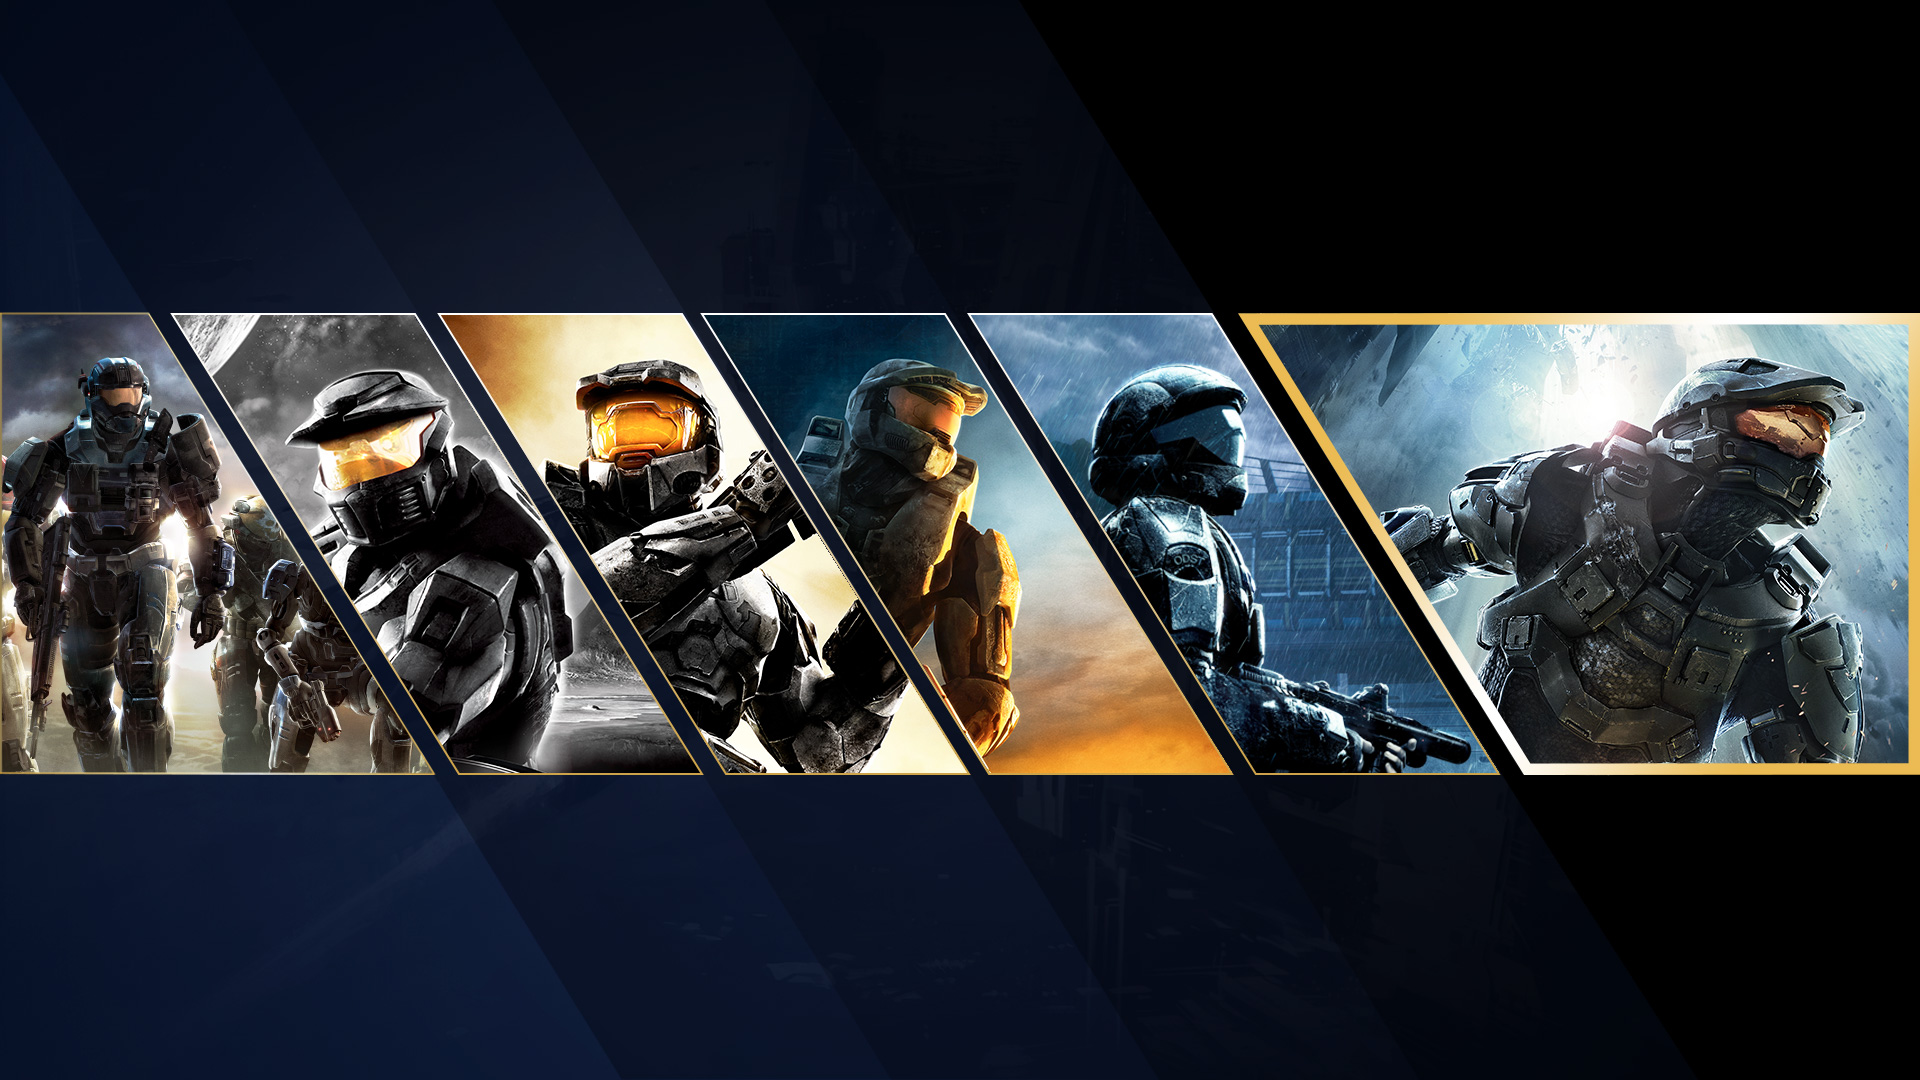 Halo: the master chief collection | spiele | offizielle halo-website